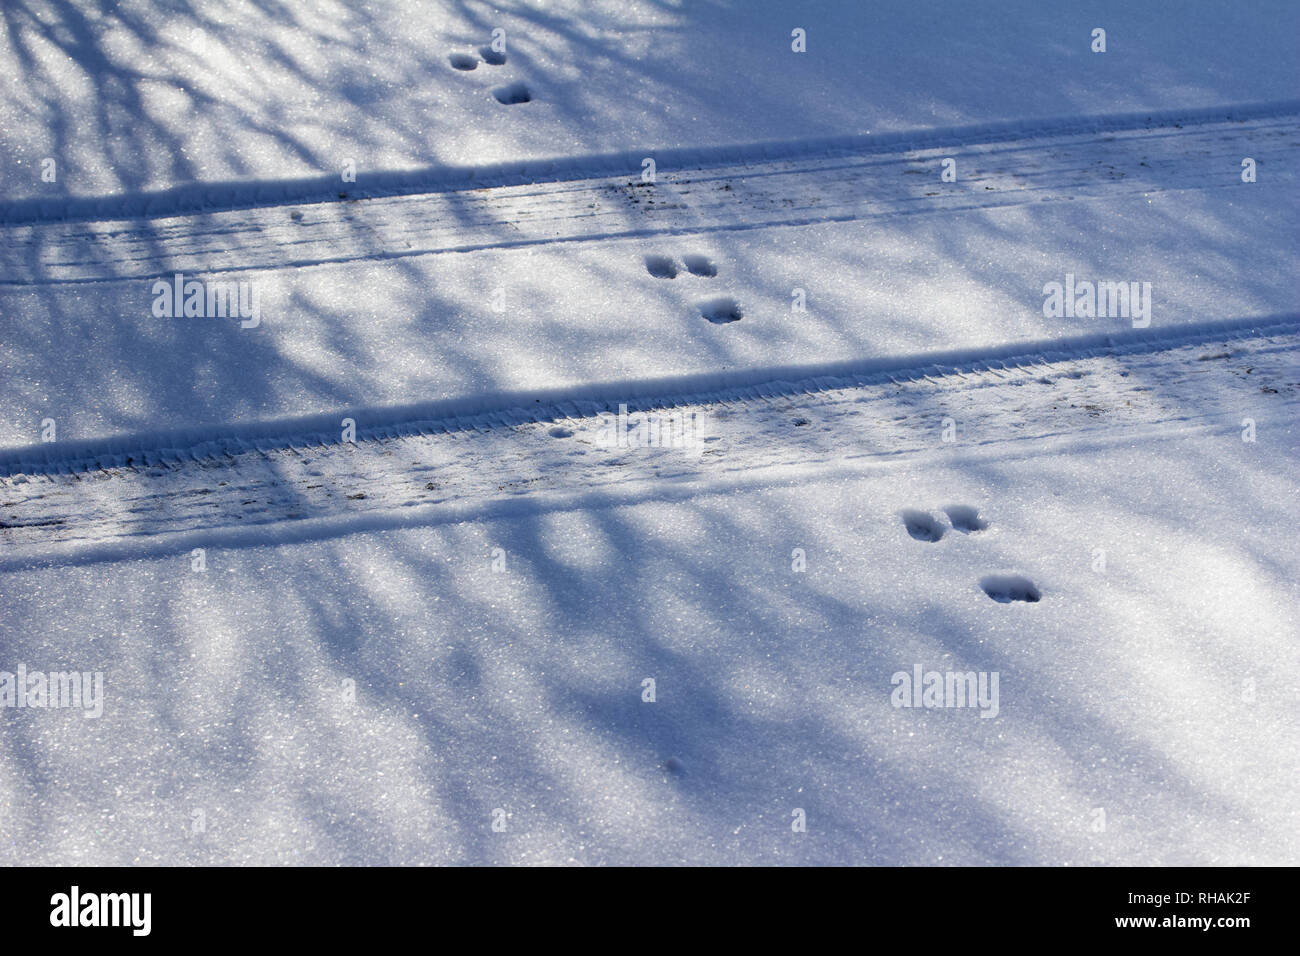 Winter snow texture abstract landscape background featuring rabbit tracks crossing tire tracks in the snow - Stock Image